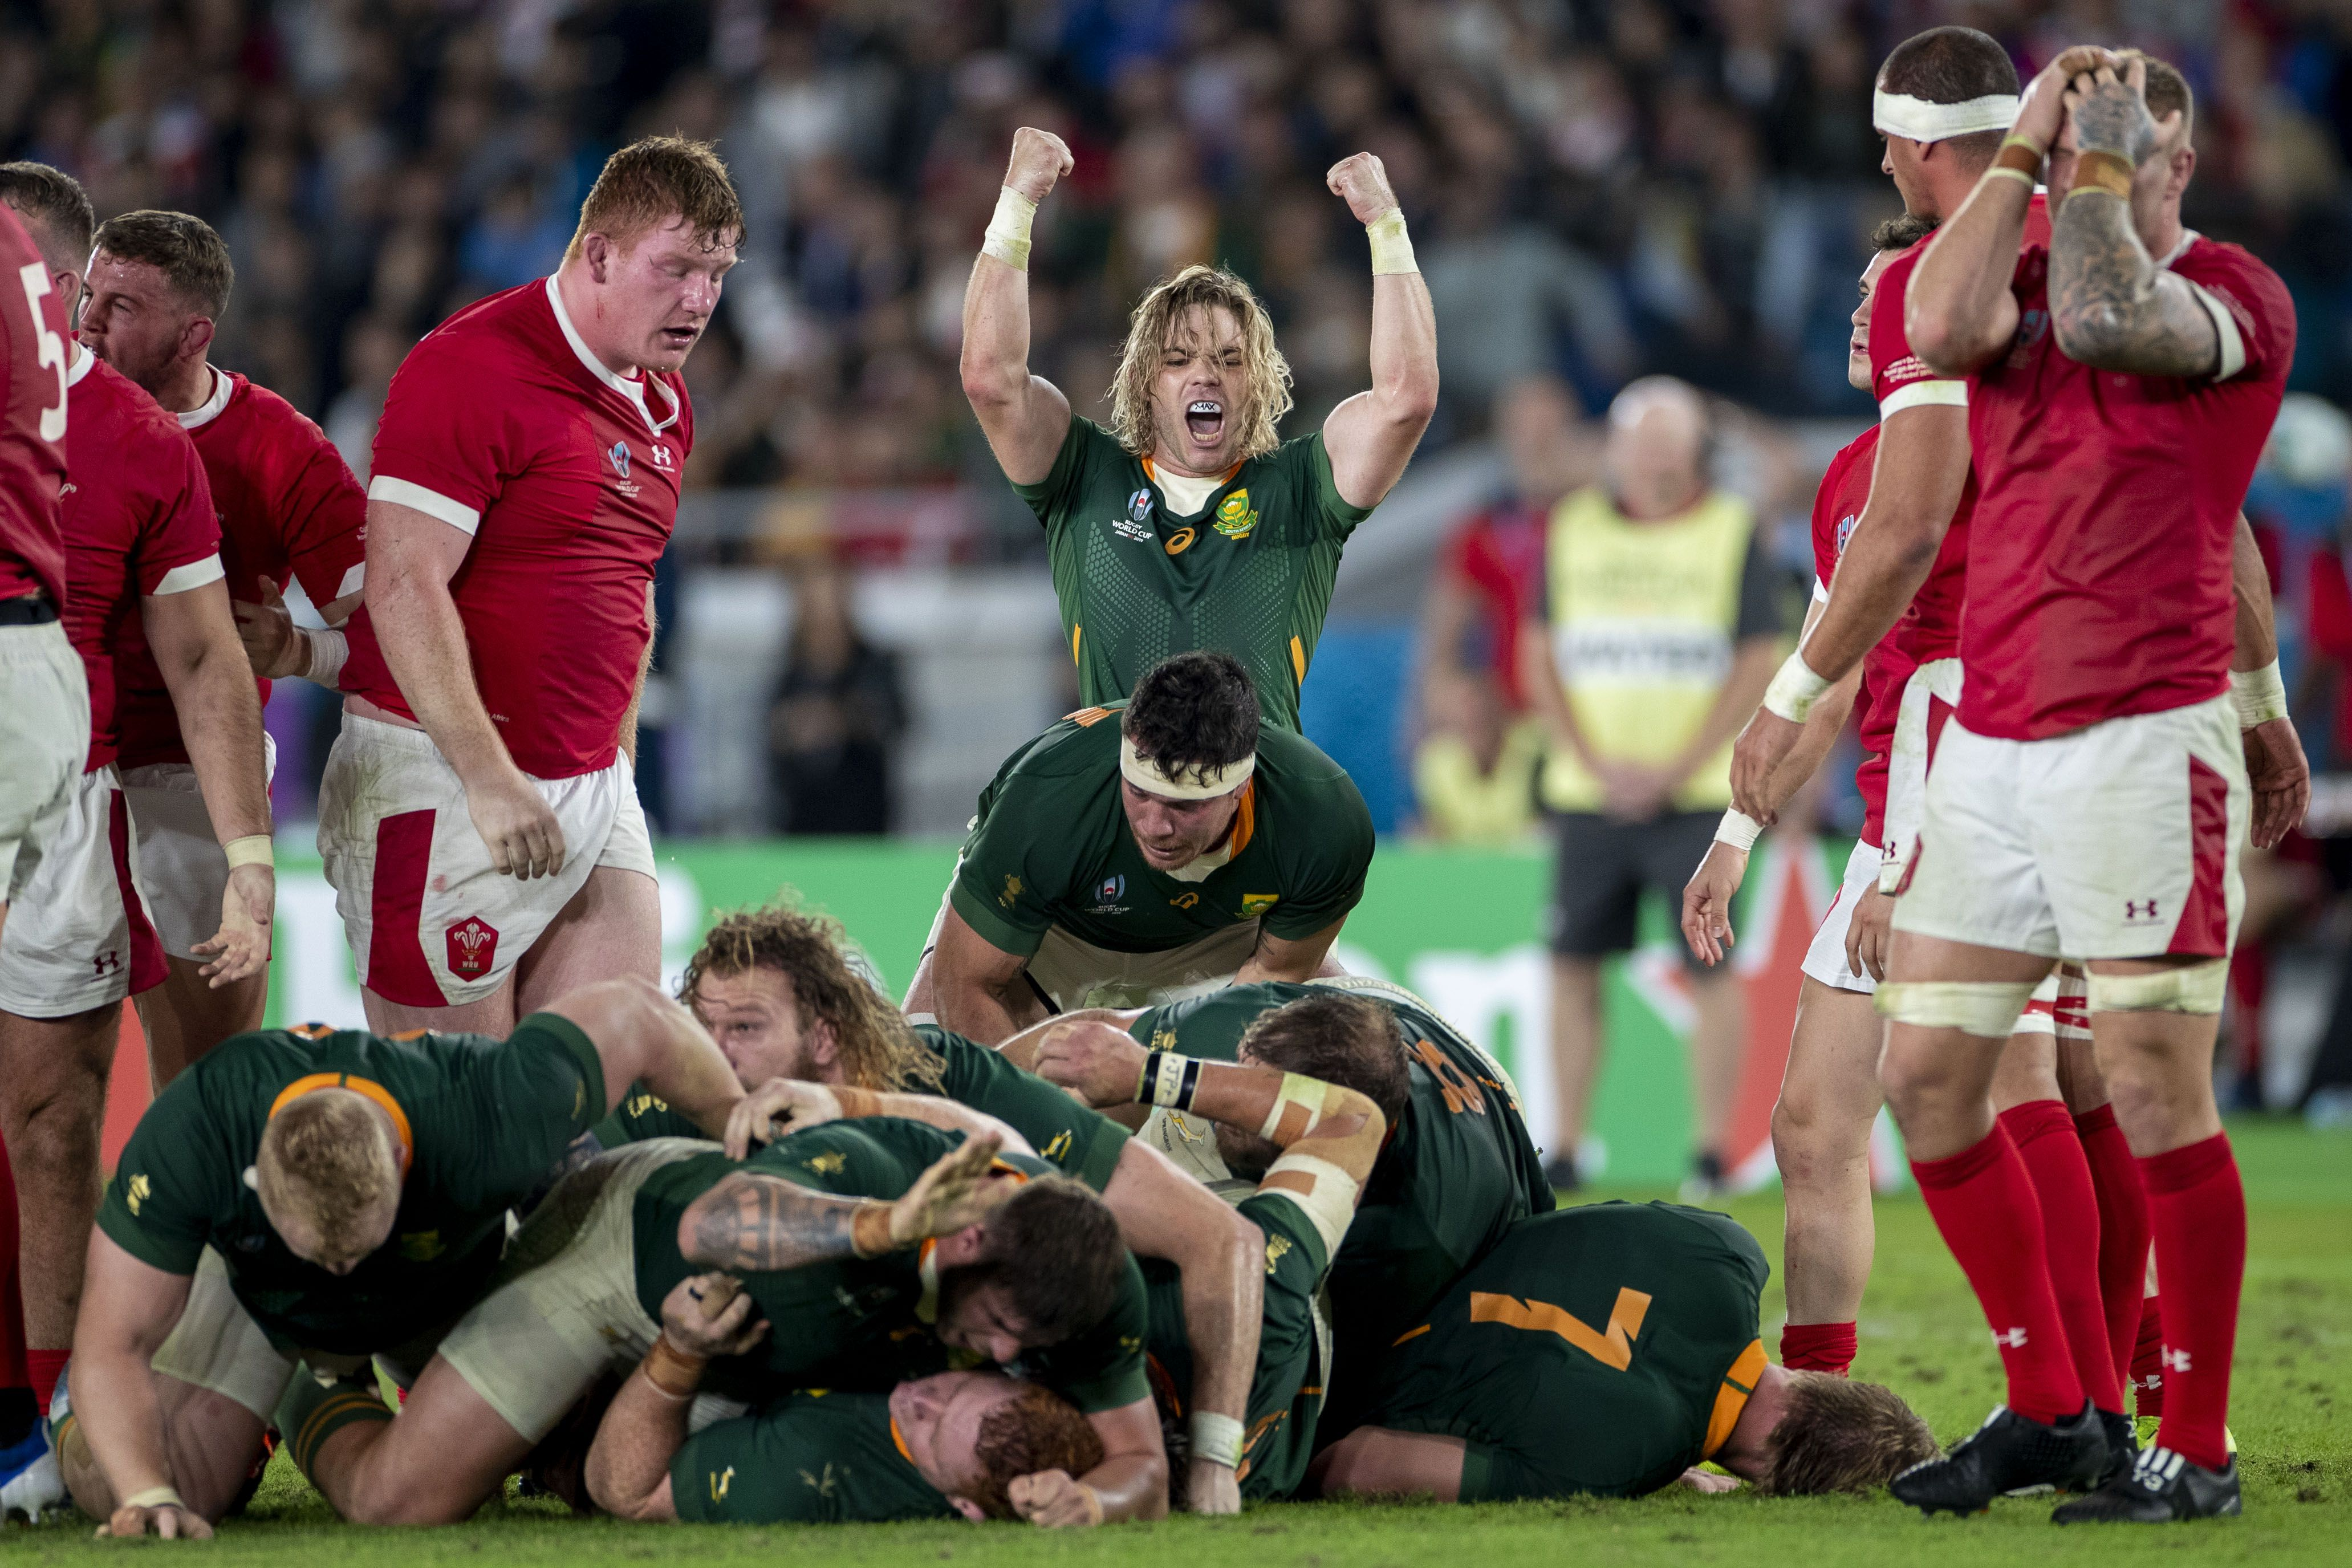 South Africa vs. Wales rugby